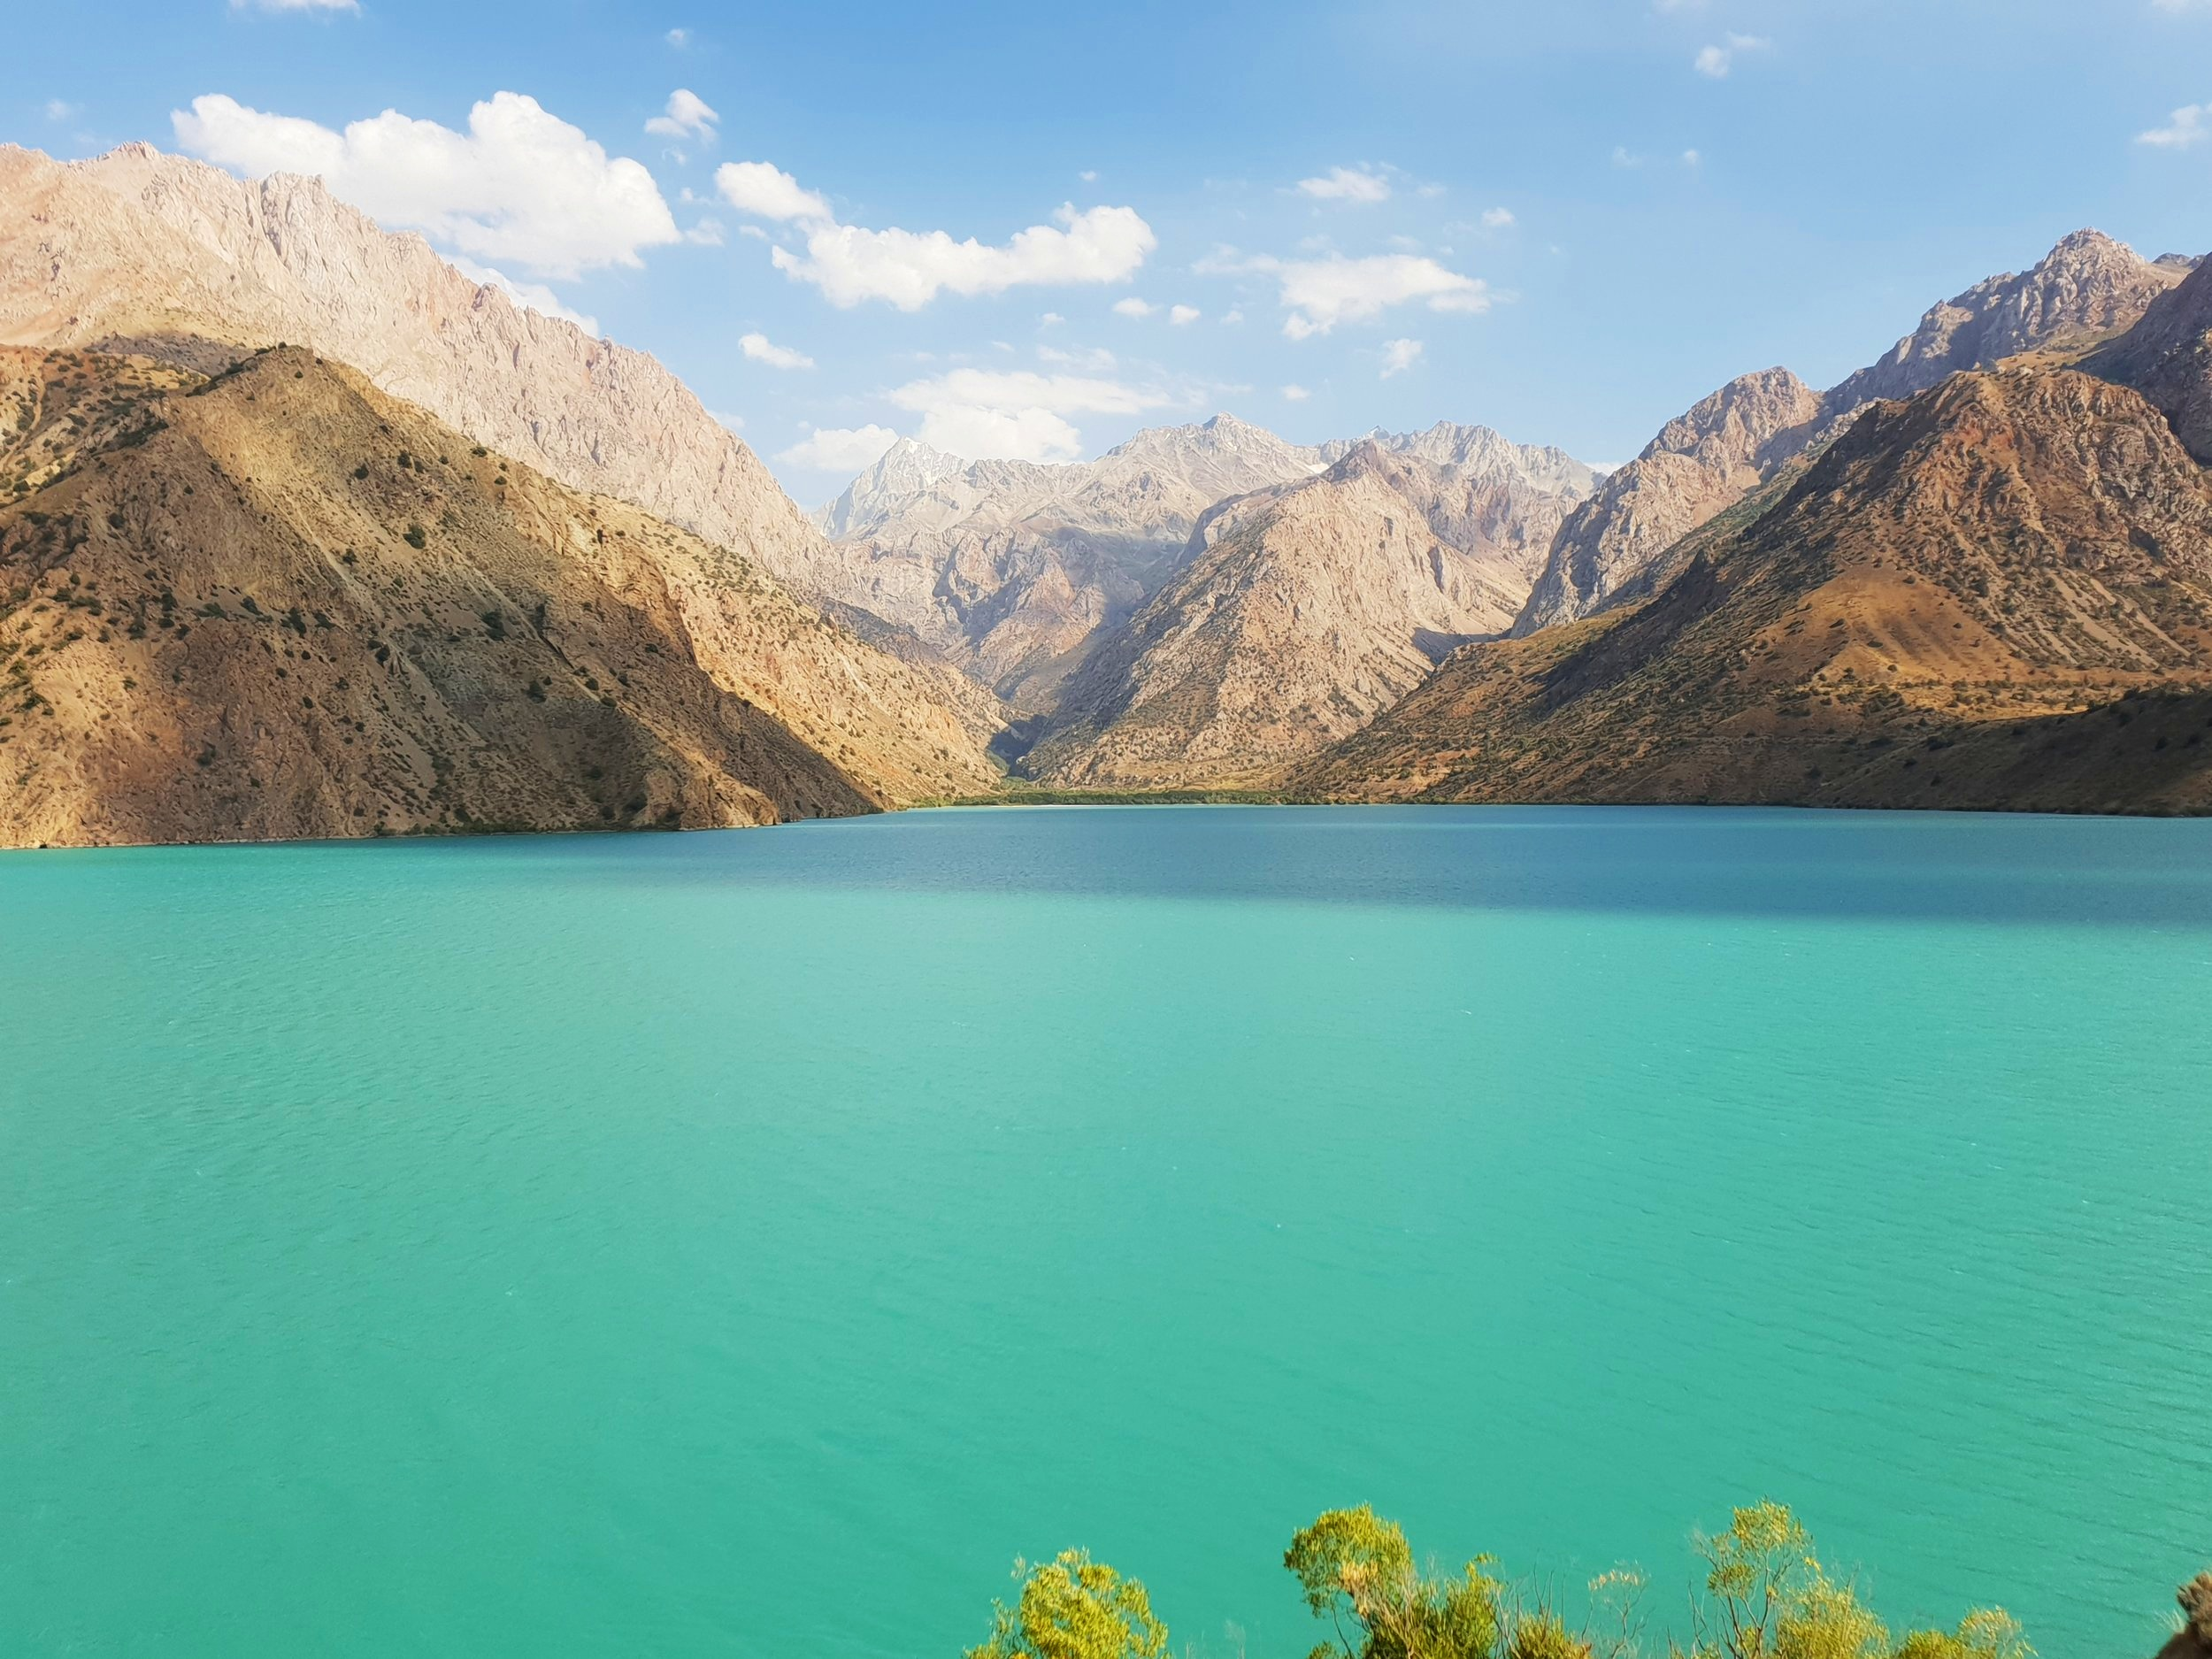 Iskanderkul lake. While it looks inviting, the lake is this colour as it is fed into directly by glaciers.